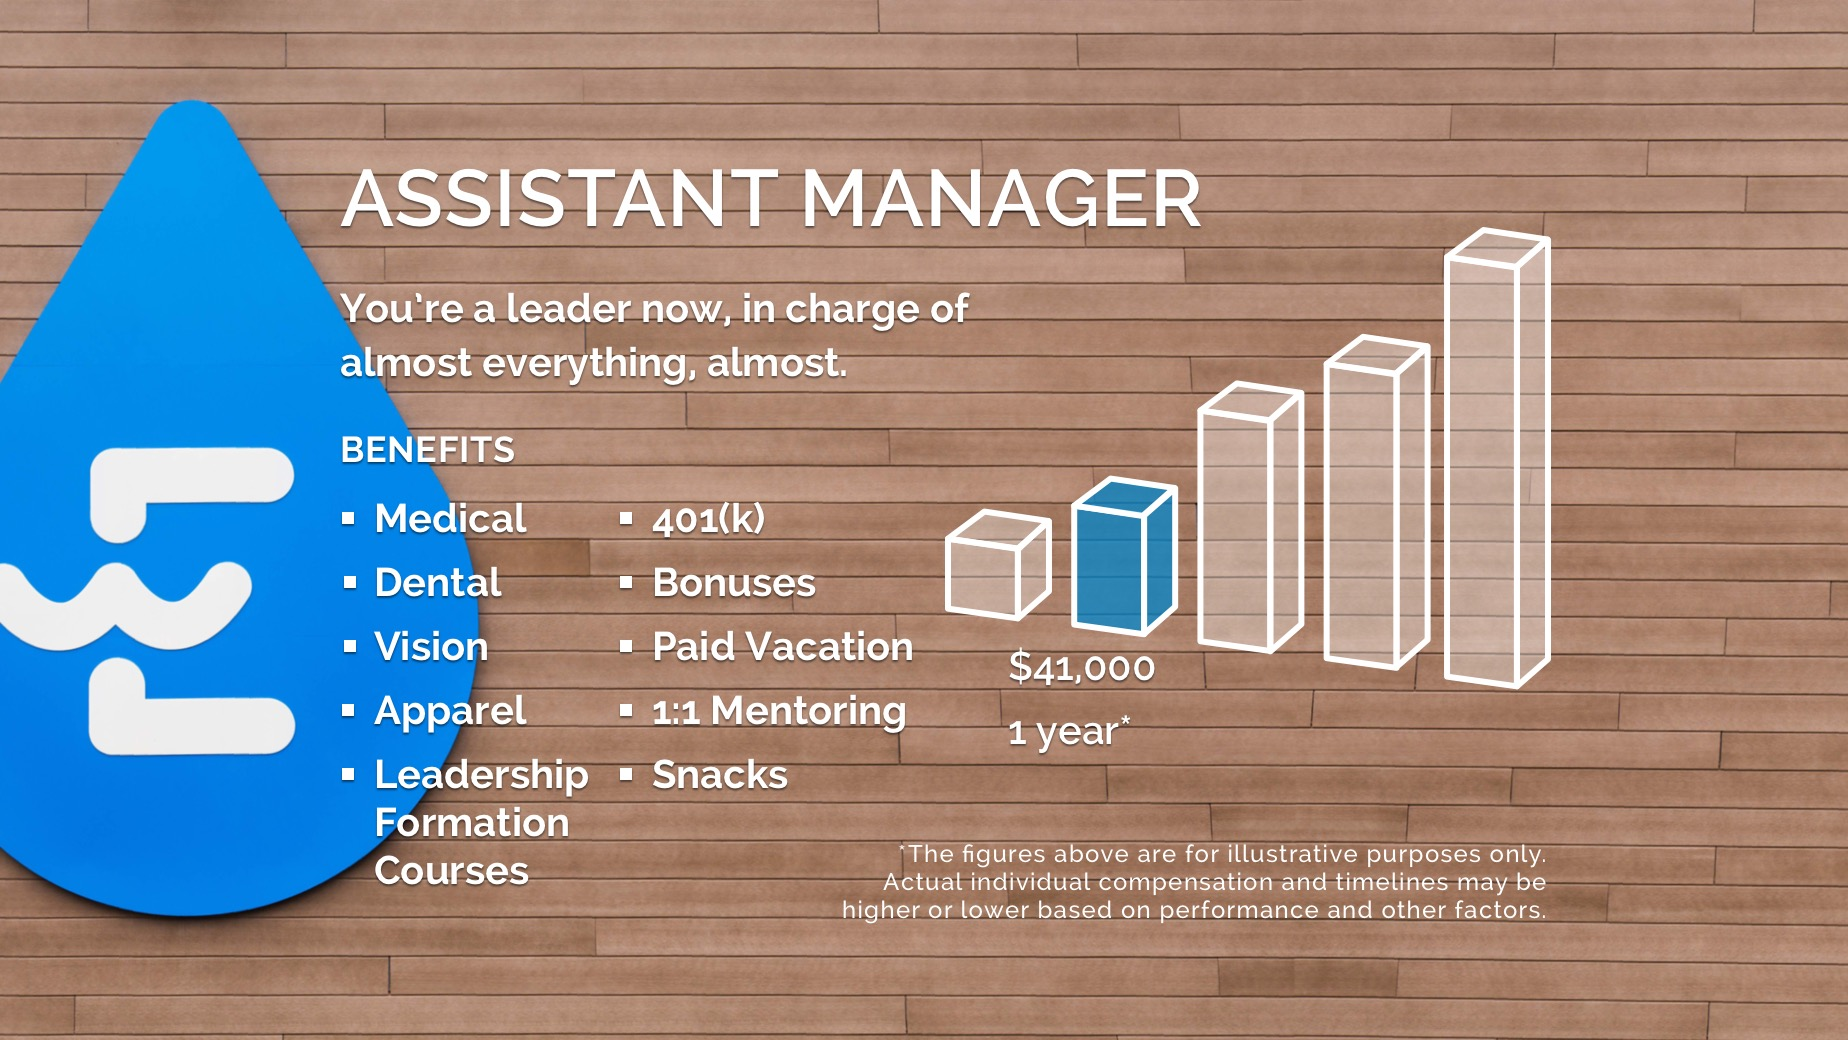 assistant-manager.jpg